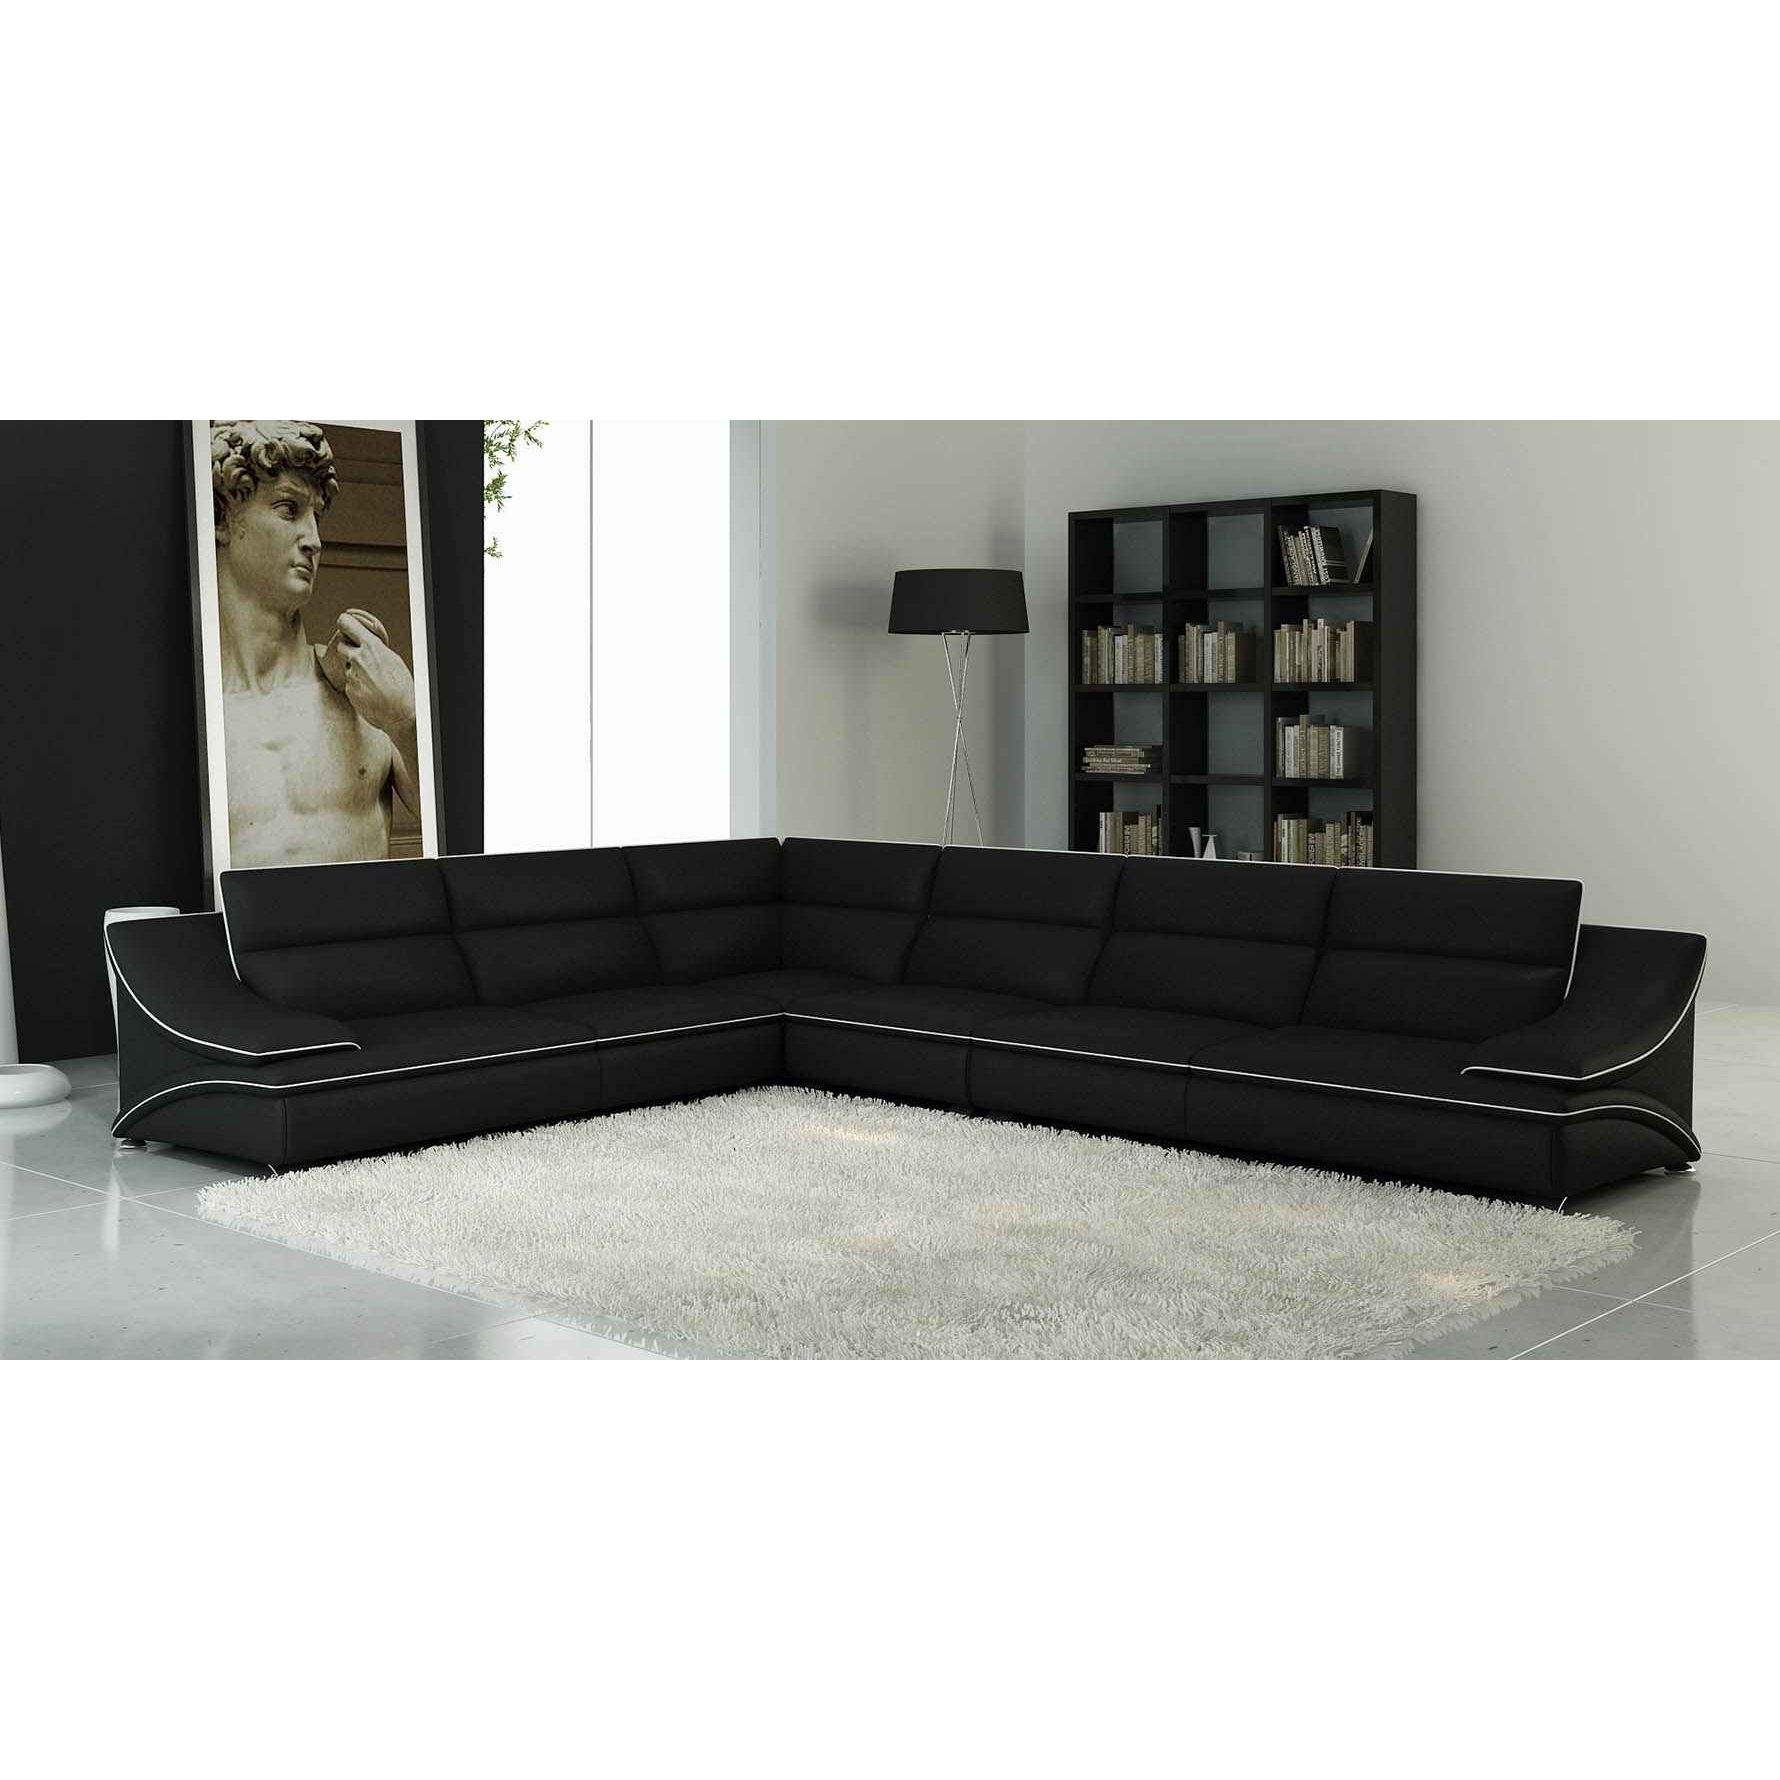 Deco In Paris Canape D Angle Modulable Cuir Design Noir Et Blanc